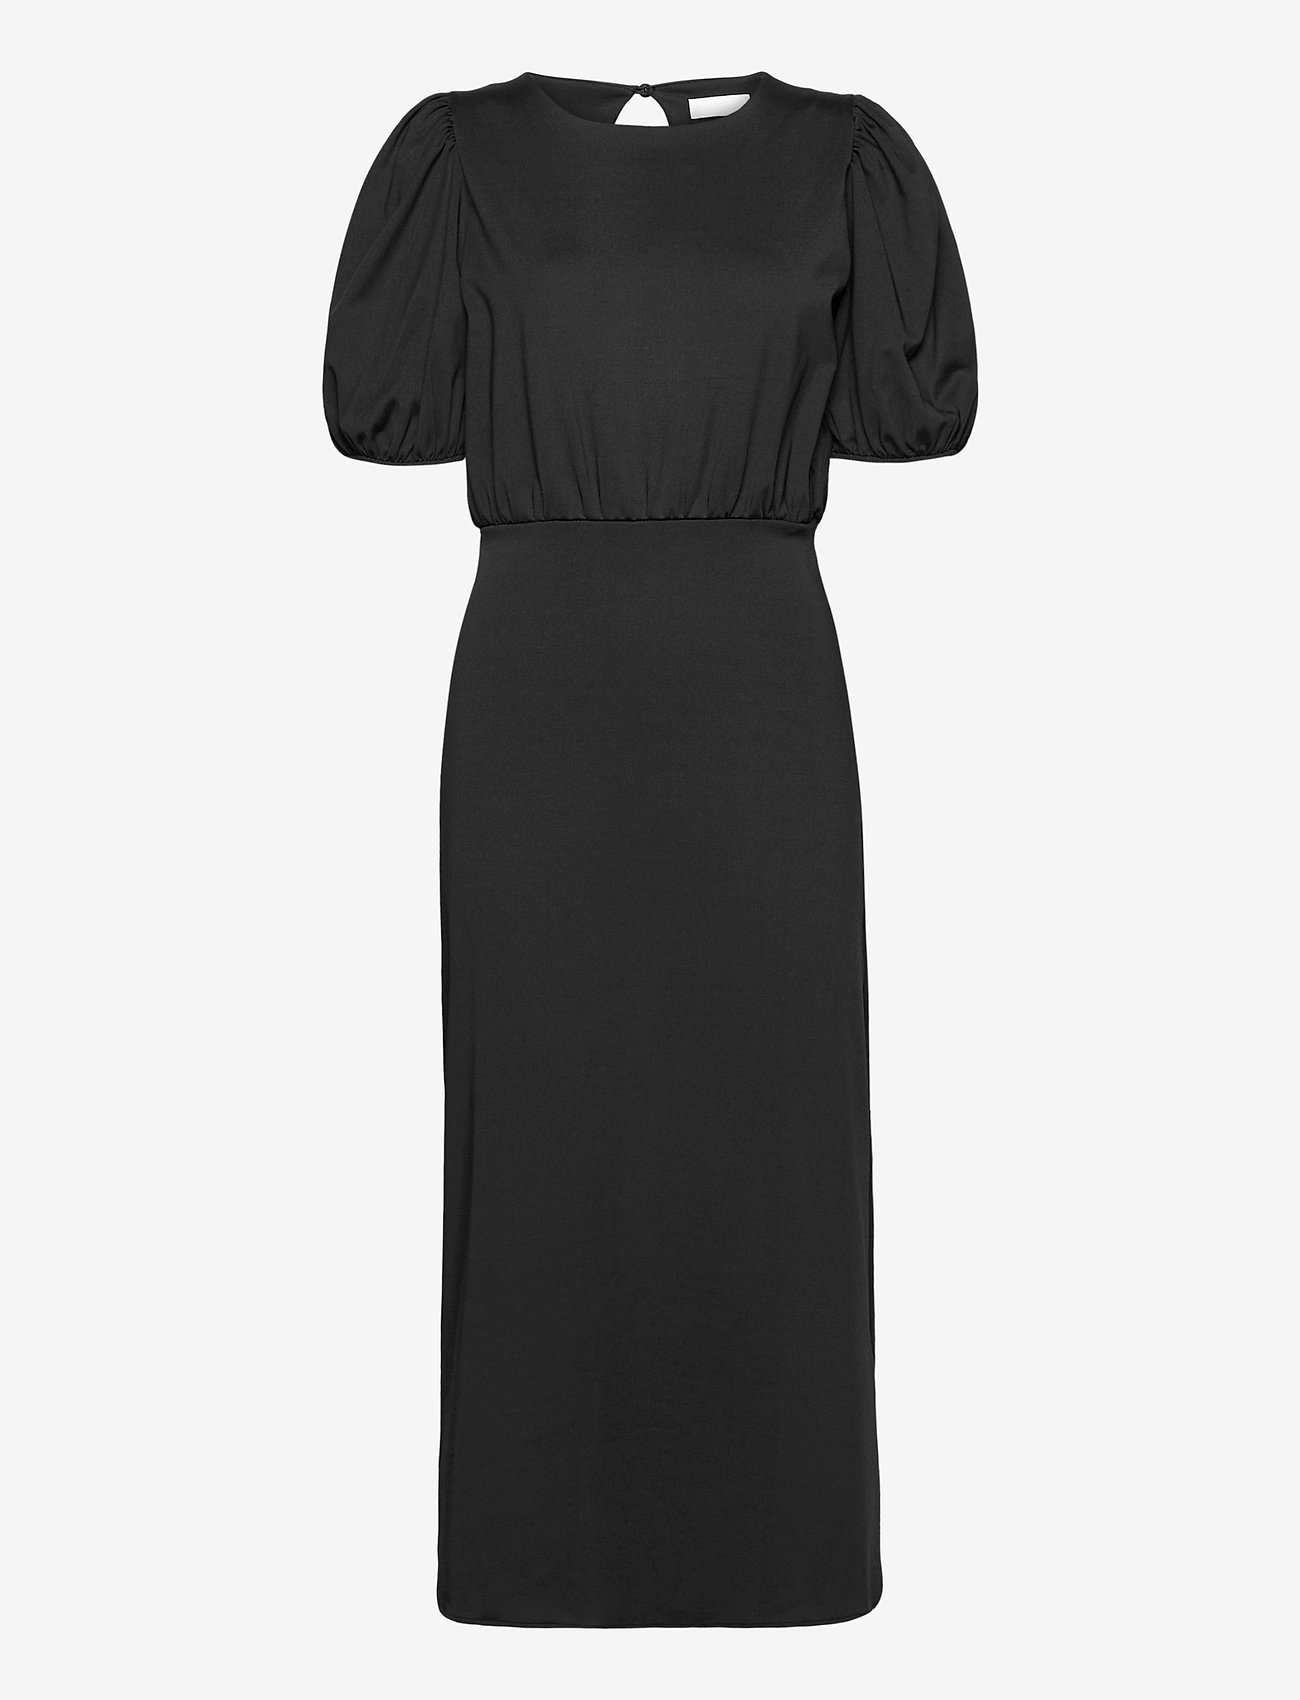 2NDDAY - 2ND Agent - evening dresses - black - 1